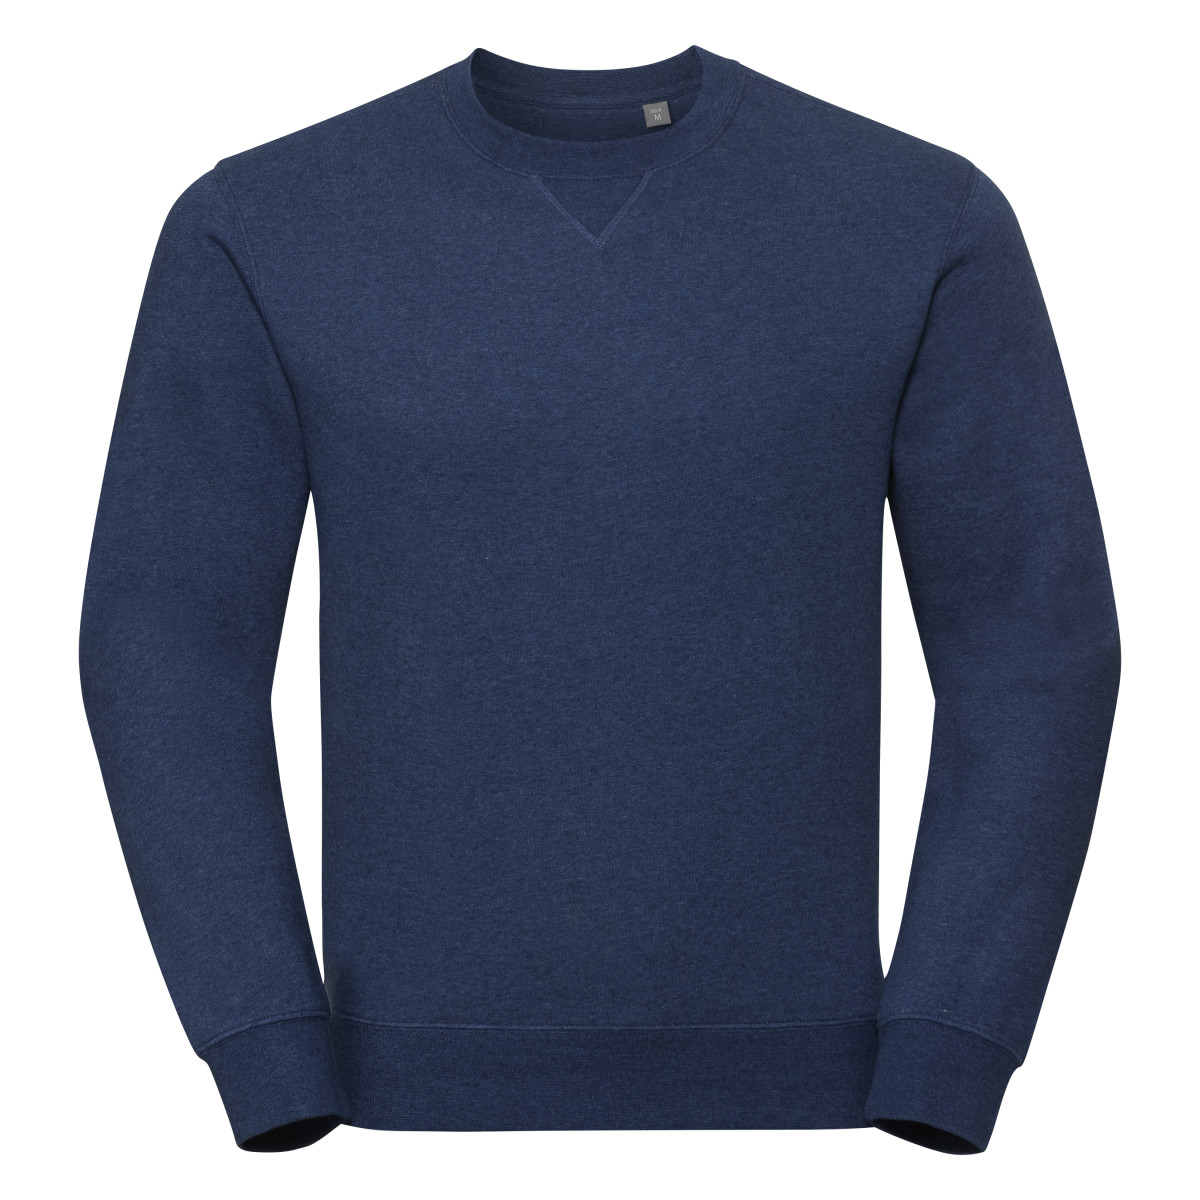 R260 Russell Authentic Melange Sweatshirt